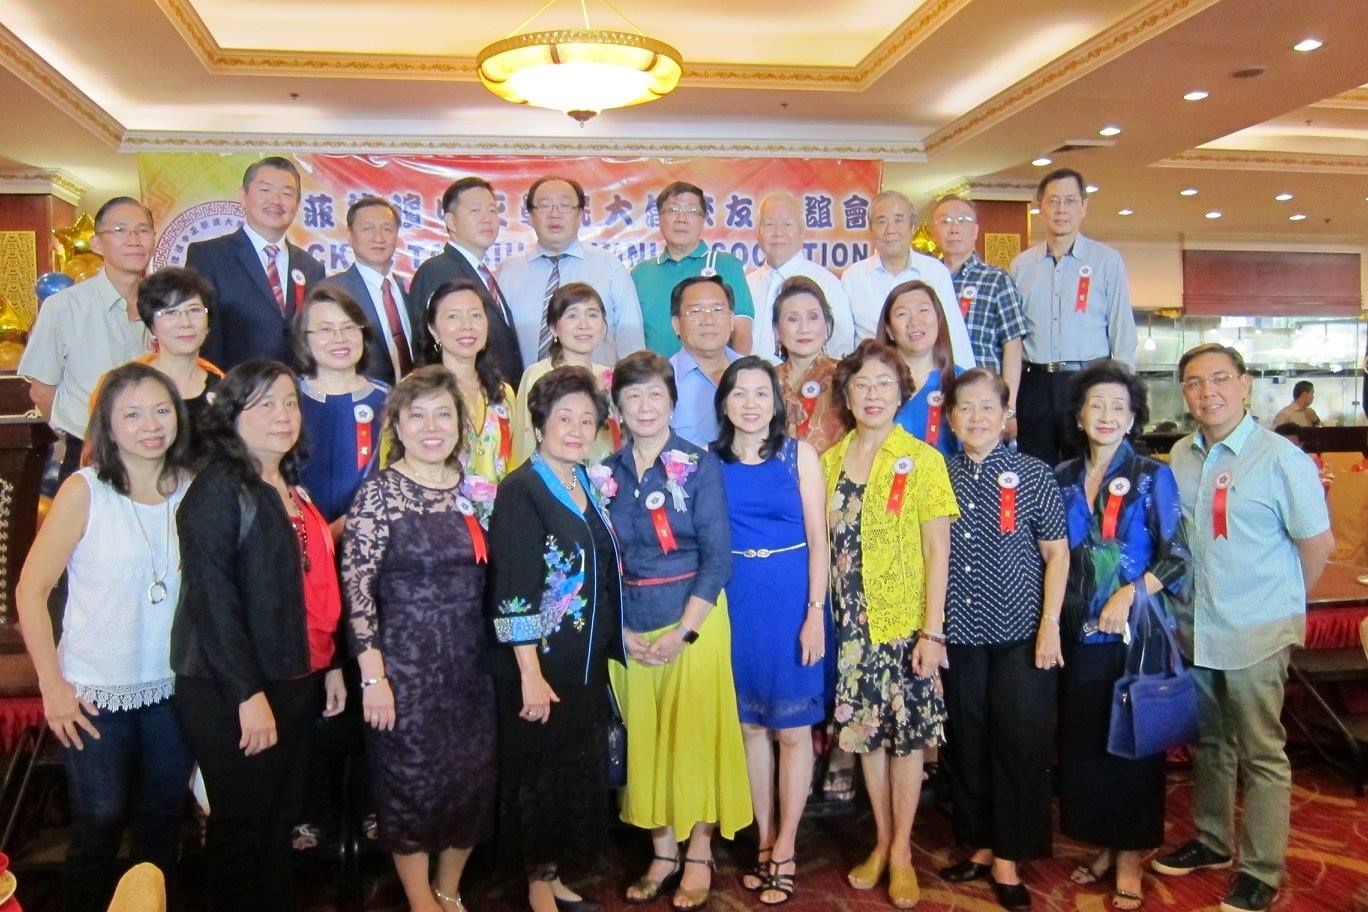 Induction of officers of Tai Siu Alumni Association at the Golden Bay Seafood Restaurant